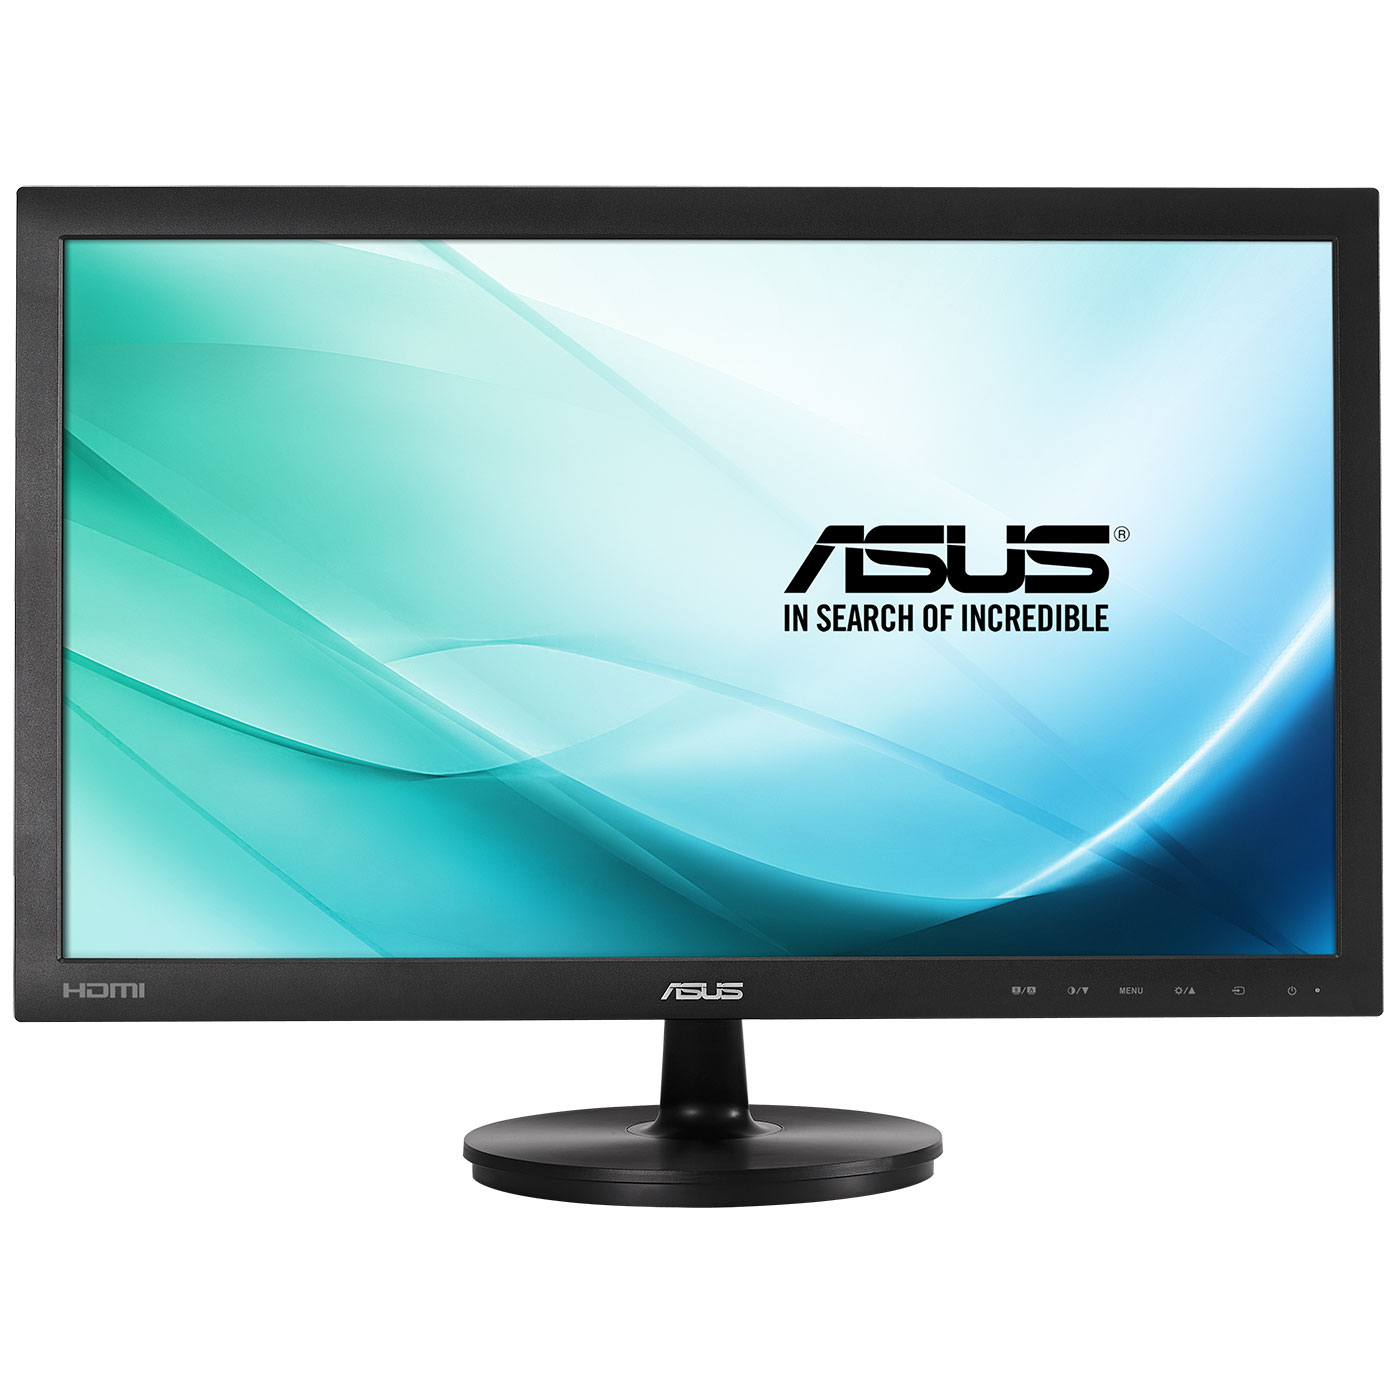 Asus 23 6 led vs247hr ecran pc asus sur ldlc for Ecran pc large